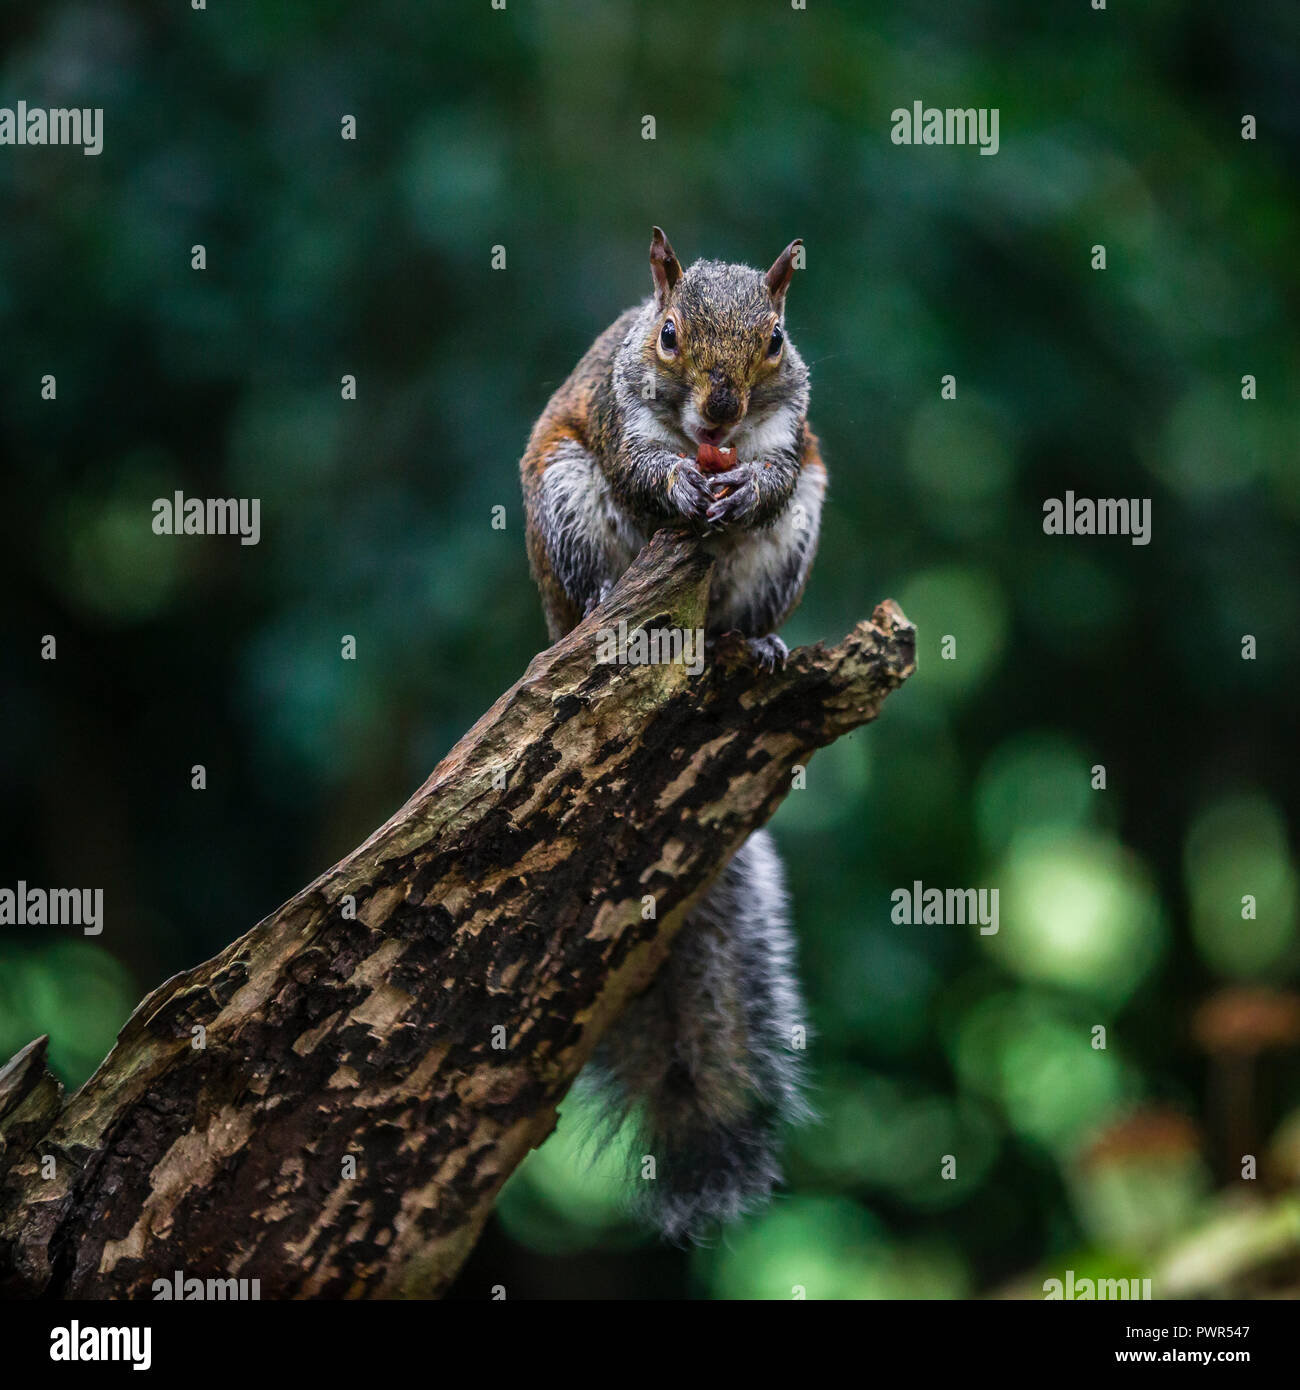 A squirrel takes a moment to feed. - Stock Image